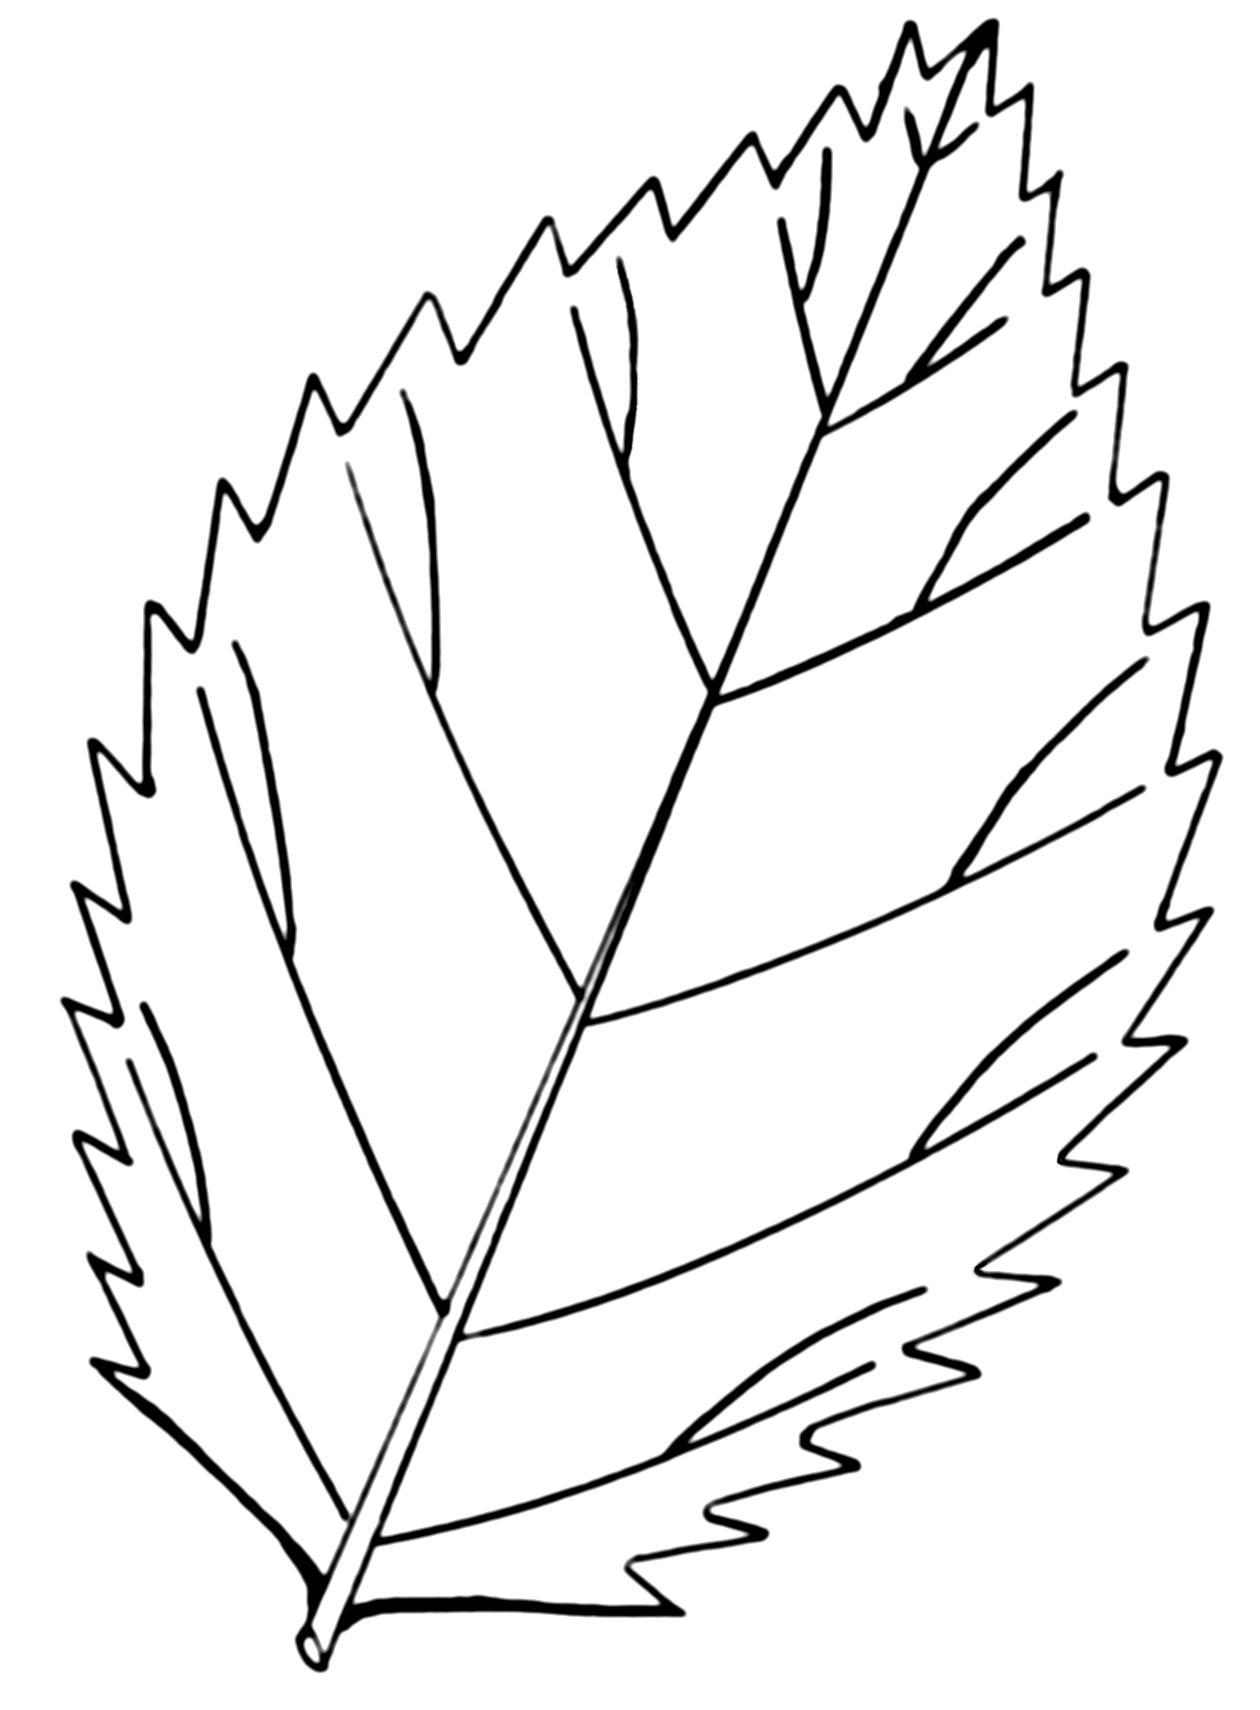 fern simple diagram single phase ac motor starter wiring file serrated leaf psf png wikimedia commons